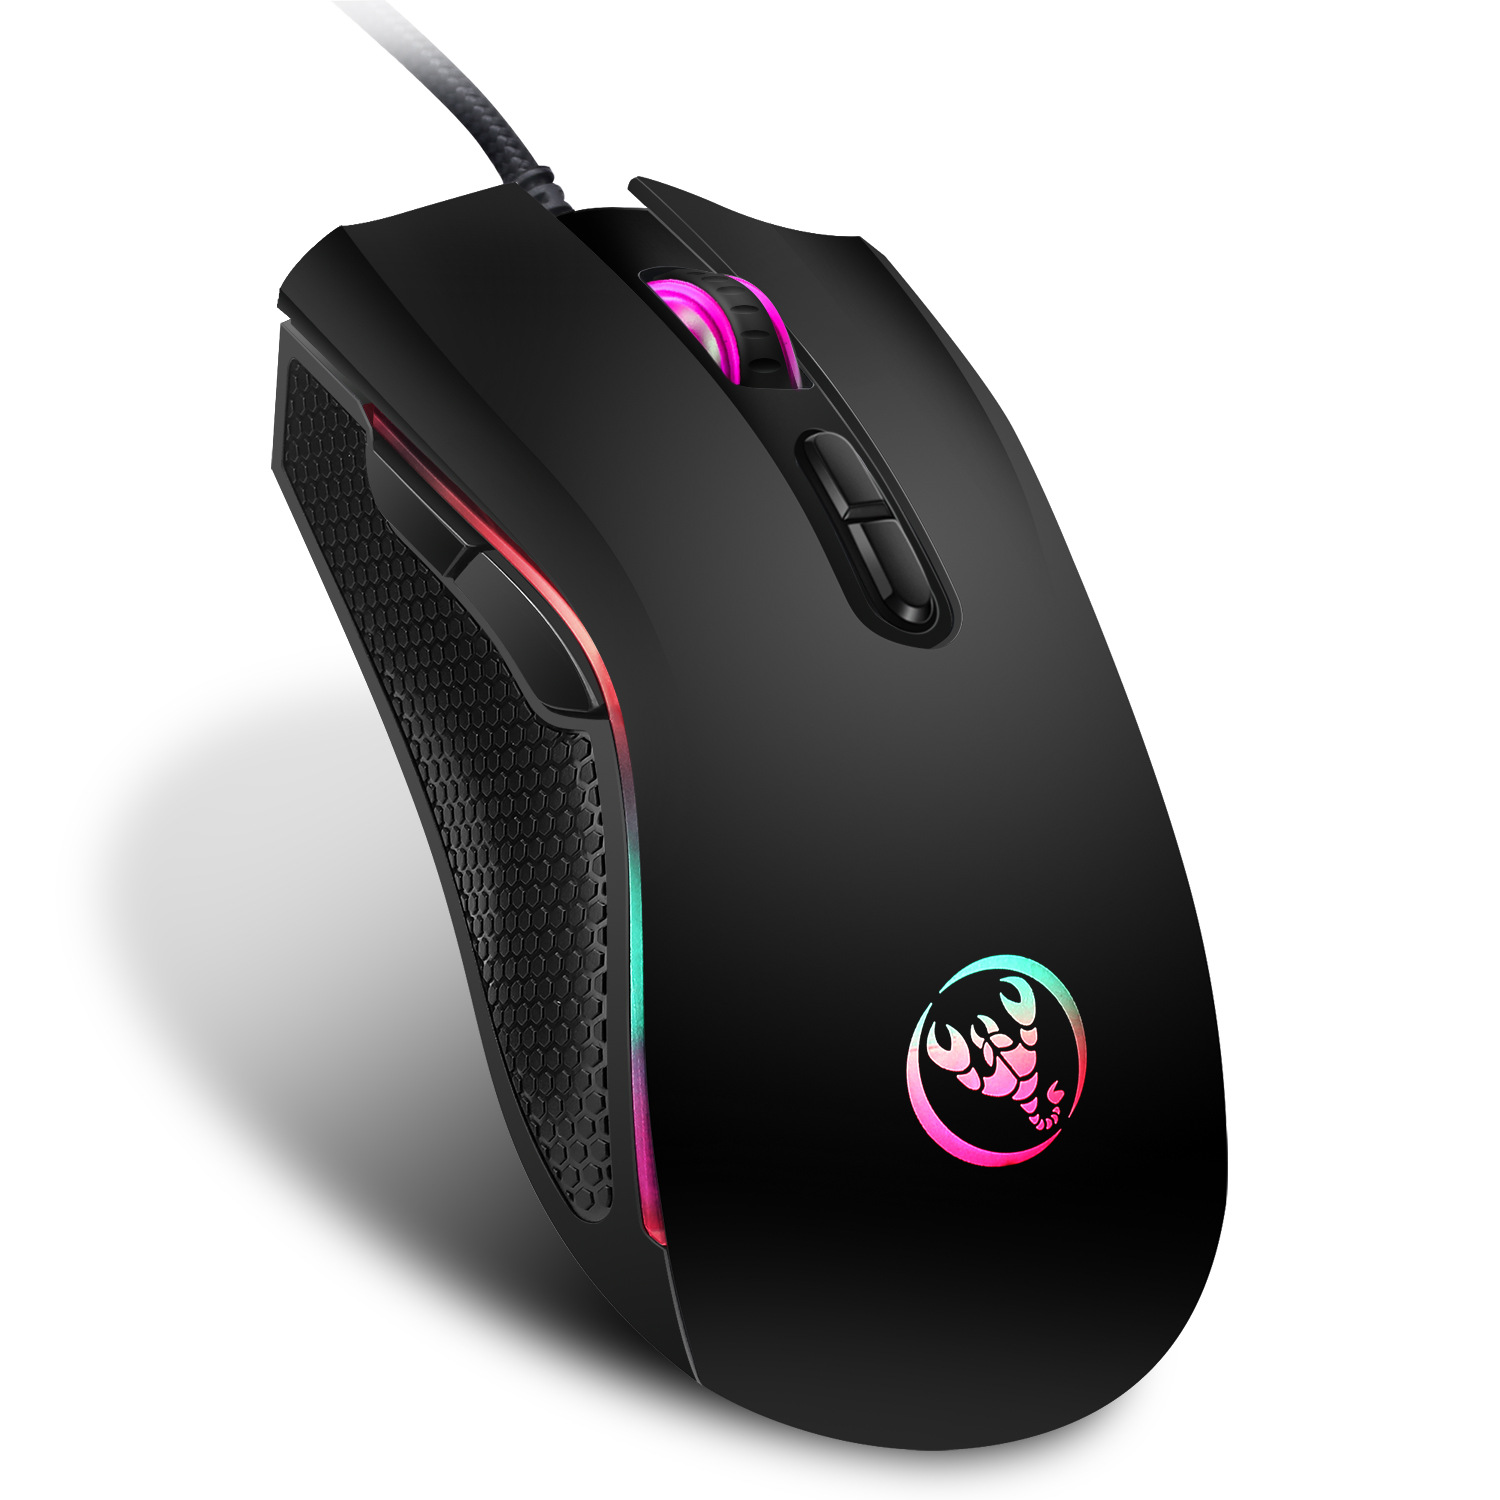 cf700a27541 Hongsund High-end optical professional gaming mouse with 7 bright colors For  LOL